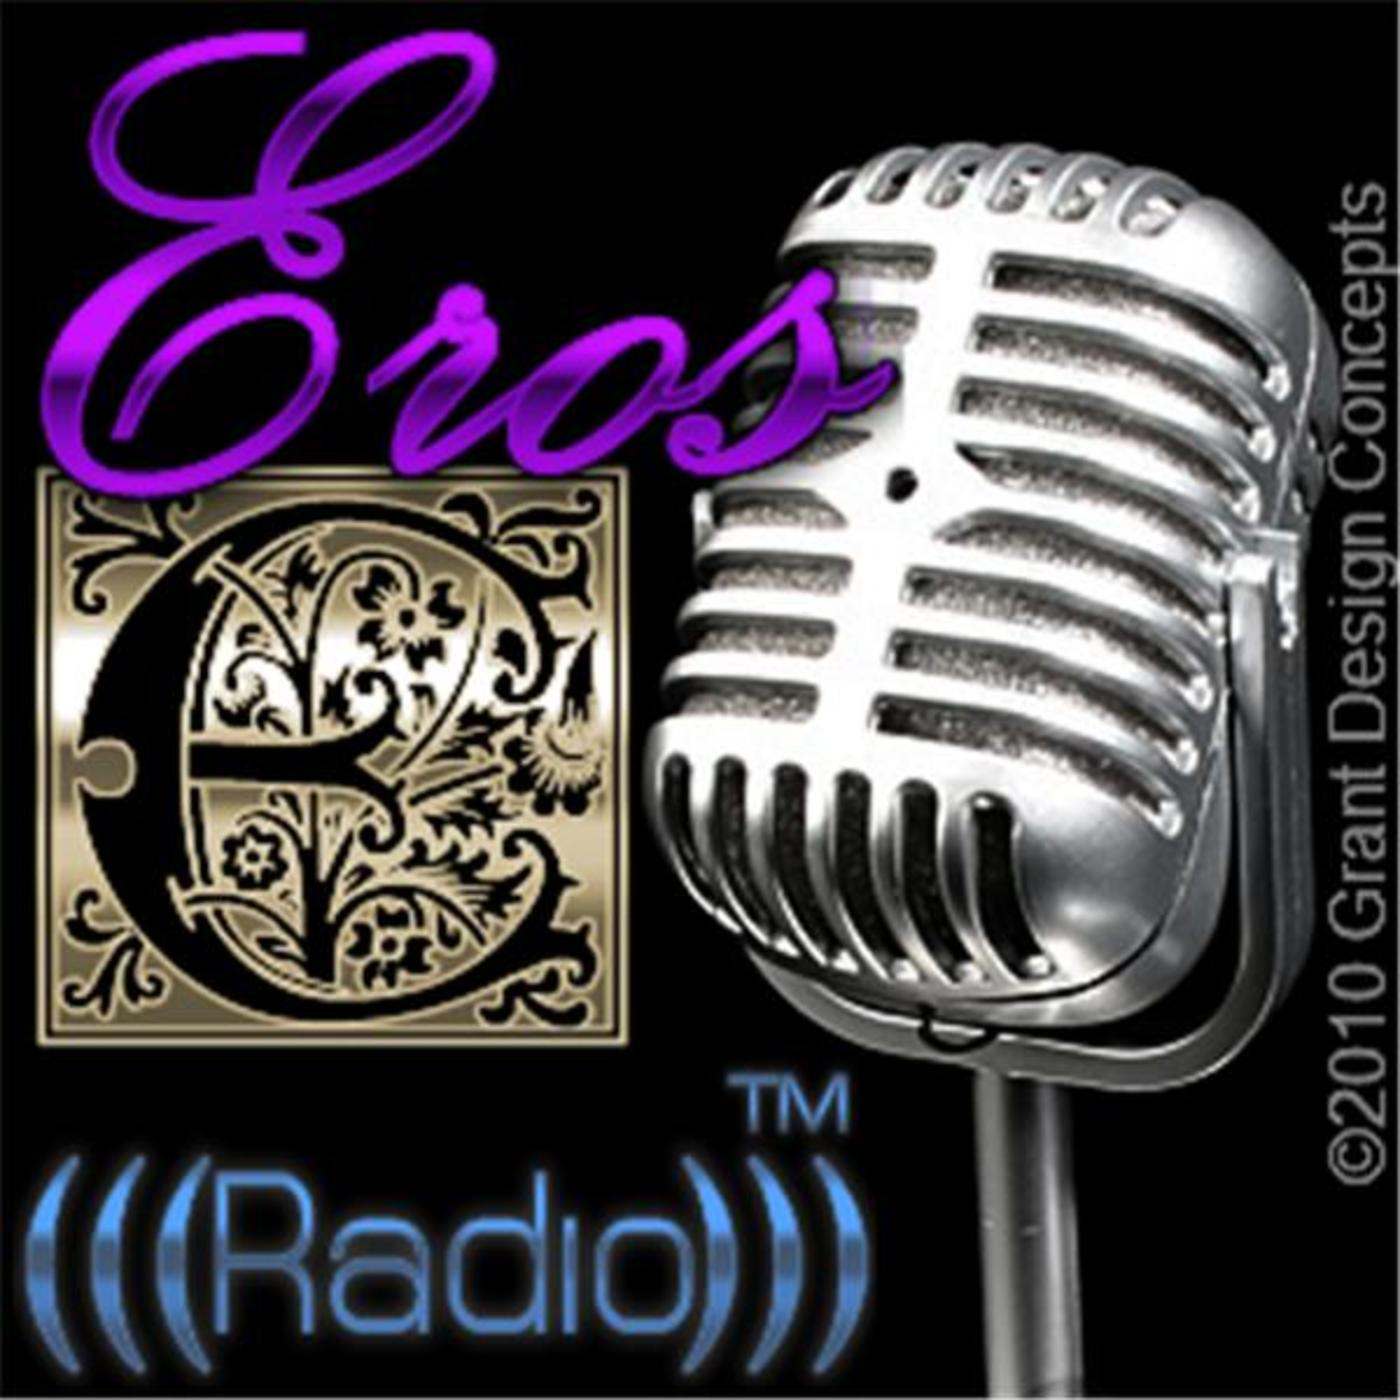 Eros Radio™: Improve Your Relationships in 15 Minutes!